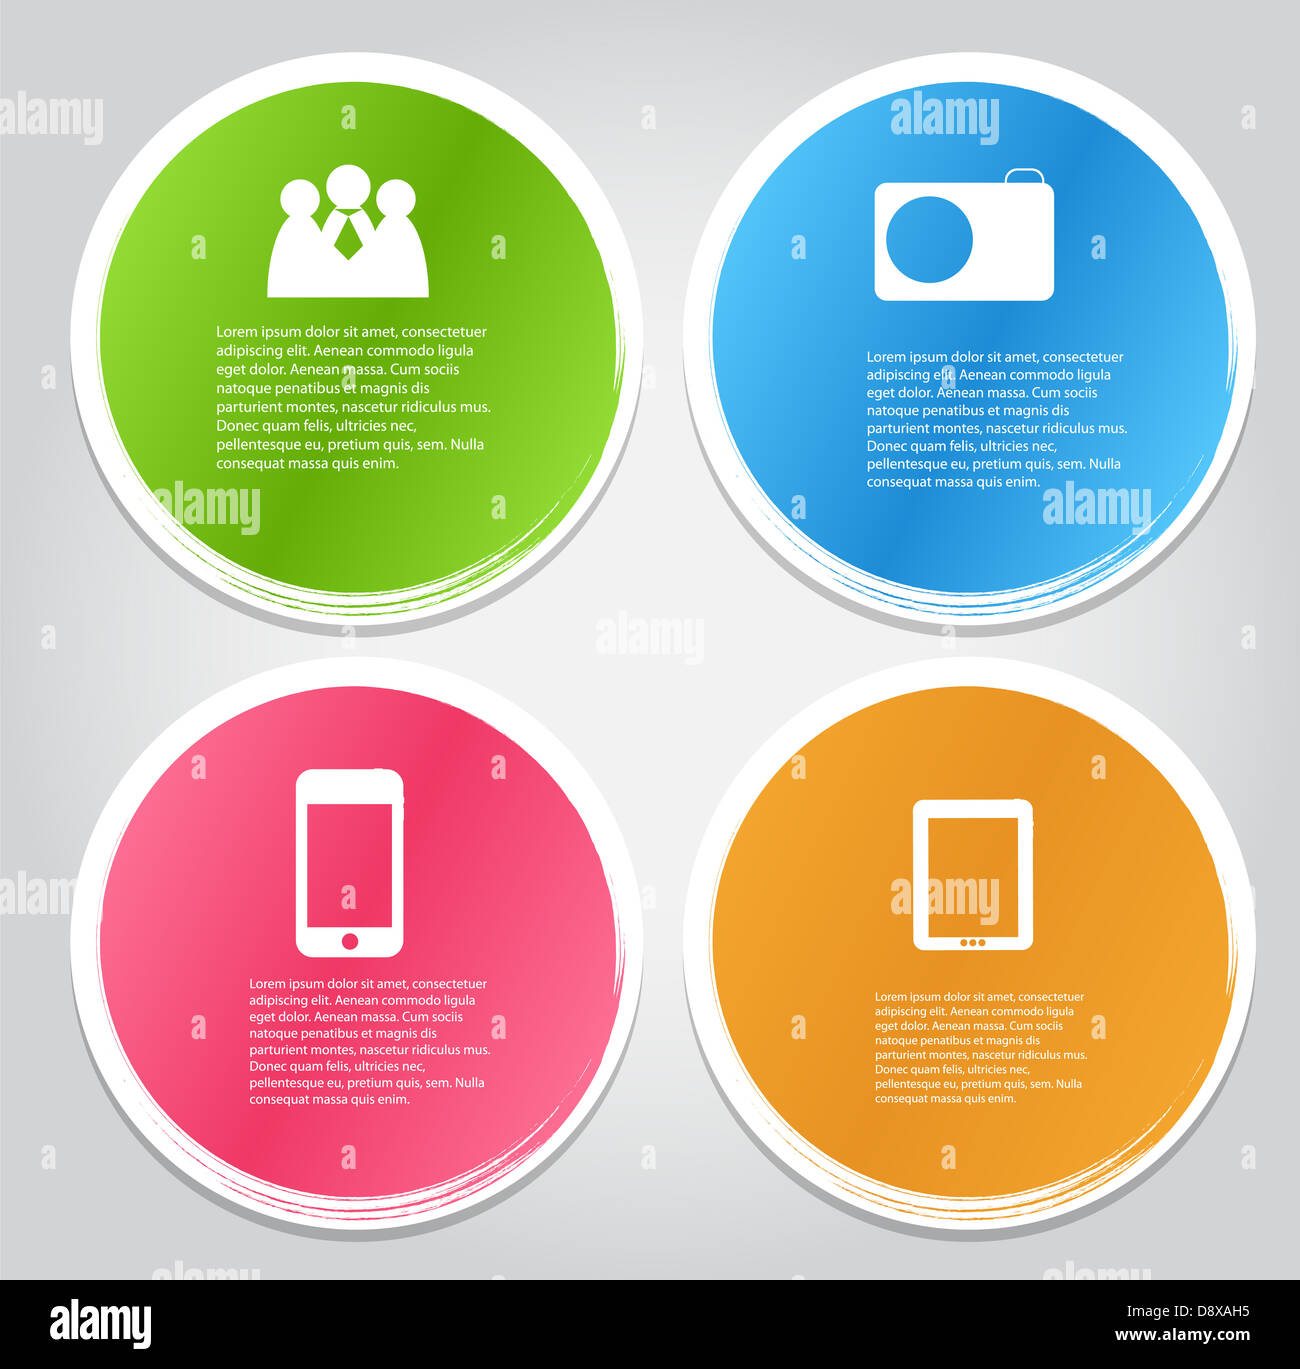 Infographic Template Vector Illustration - Stock Image